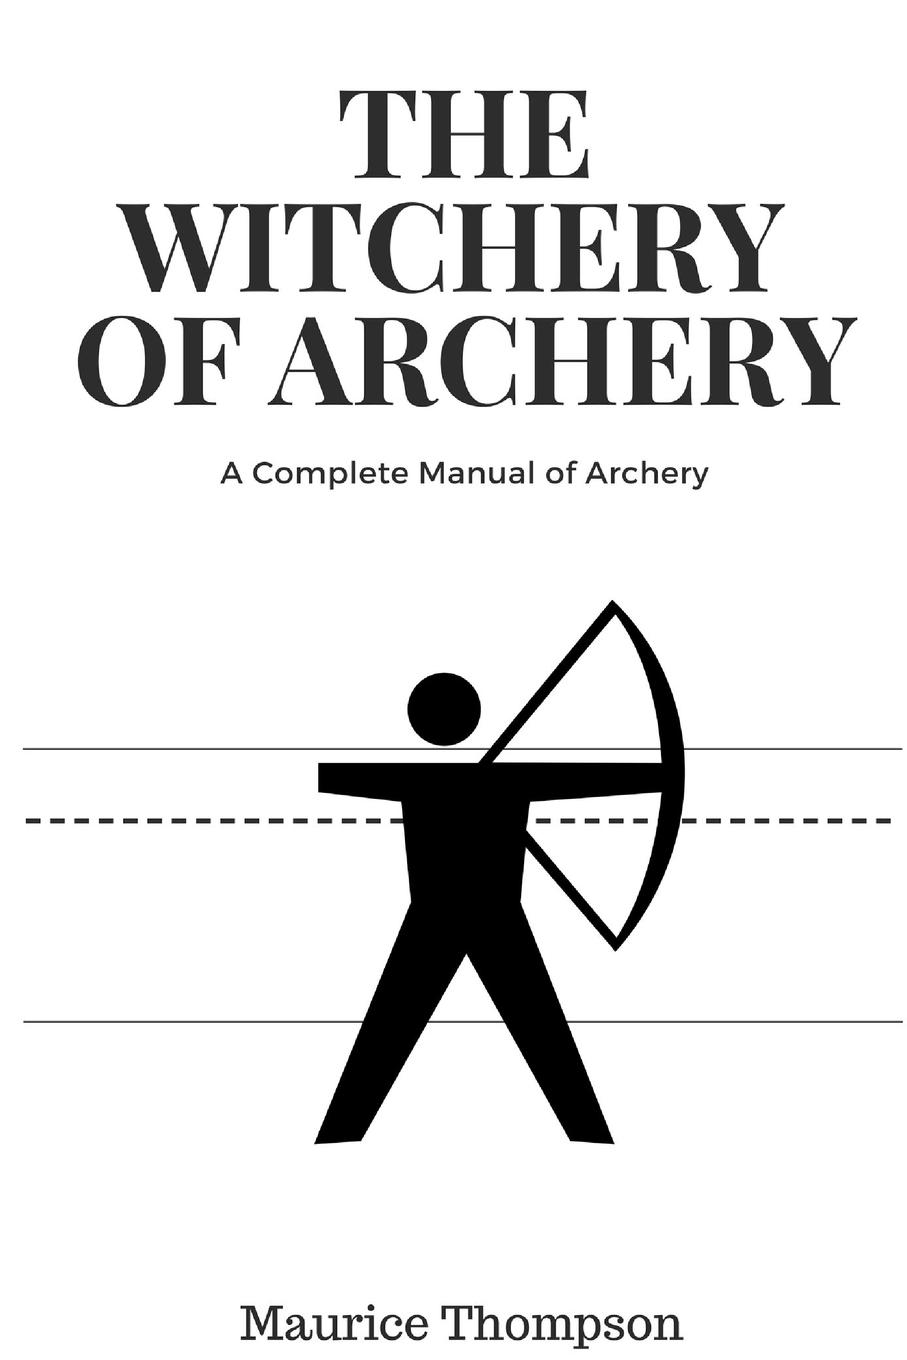 Maurice Thompson The Witchery of Archery rob bell drops like stars a few thoughts on creativity and suffering